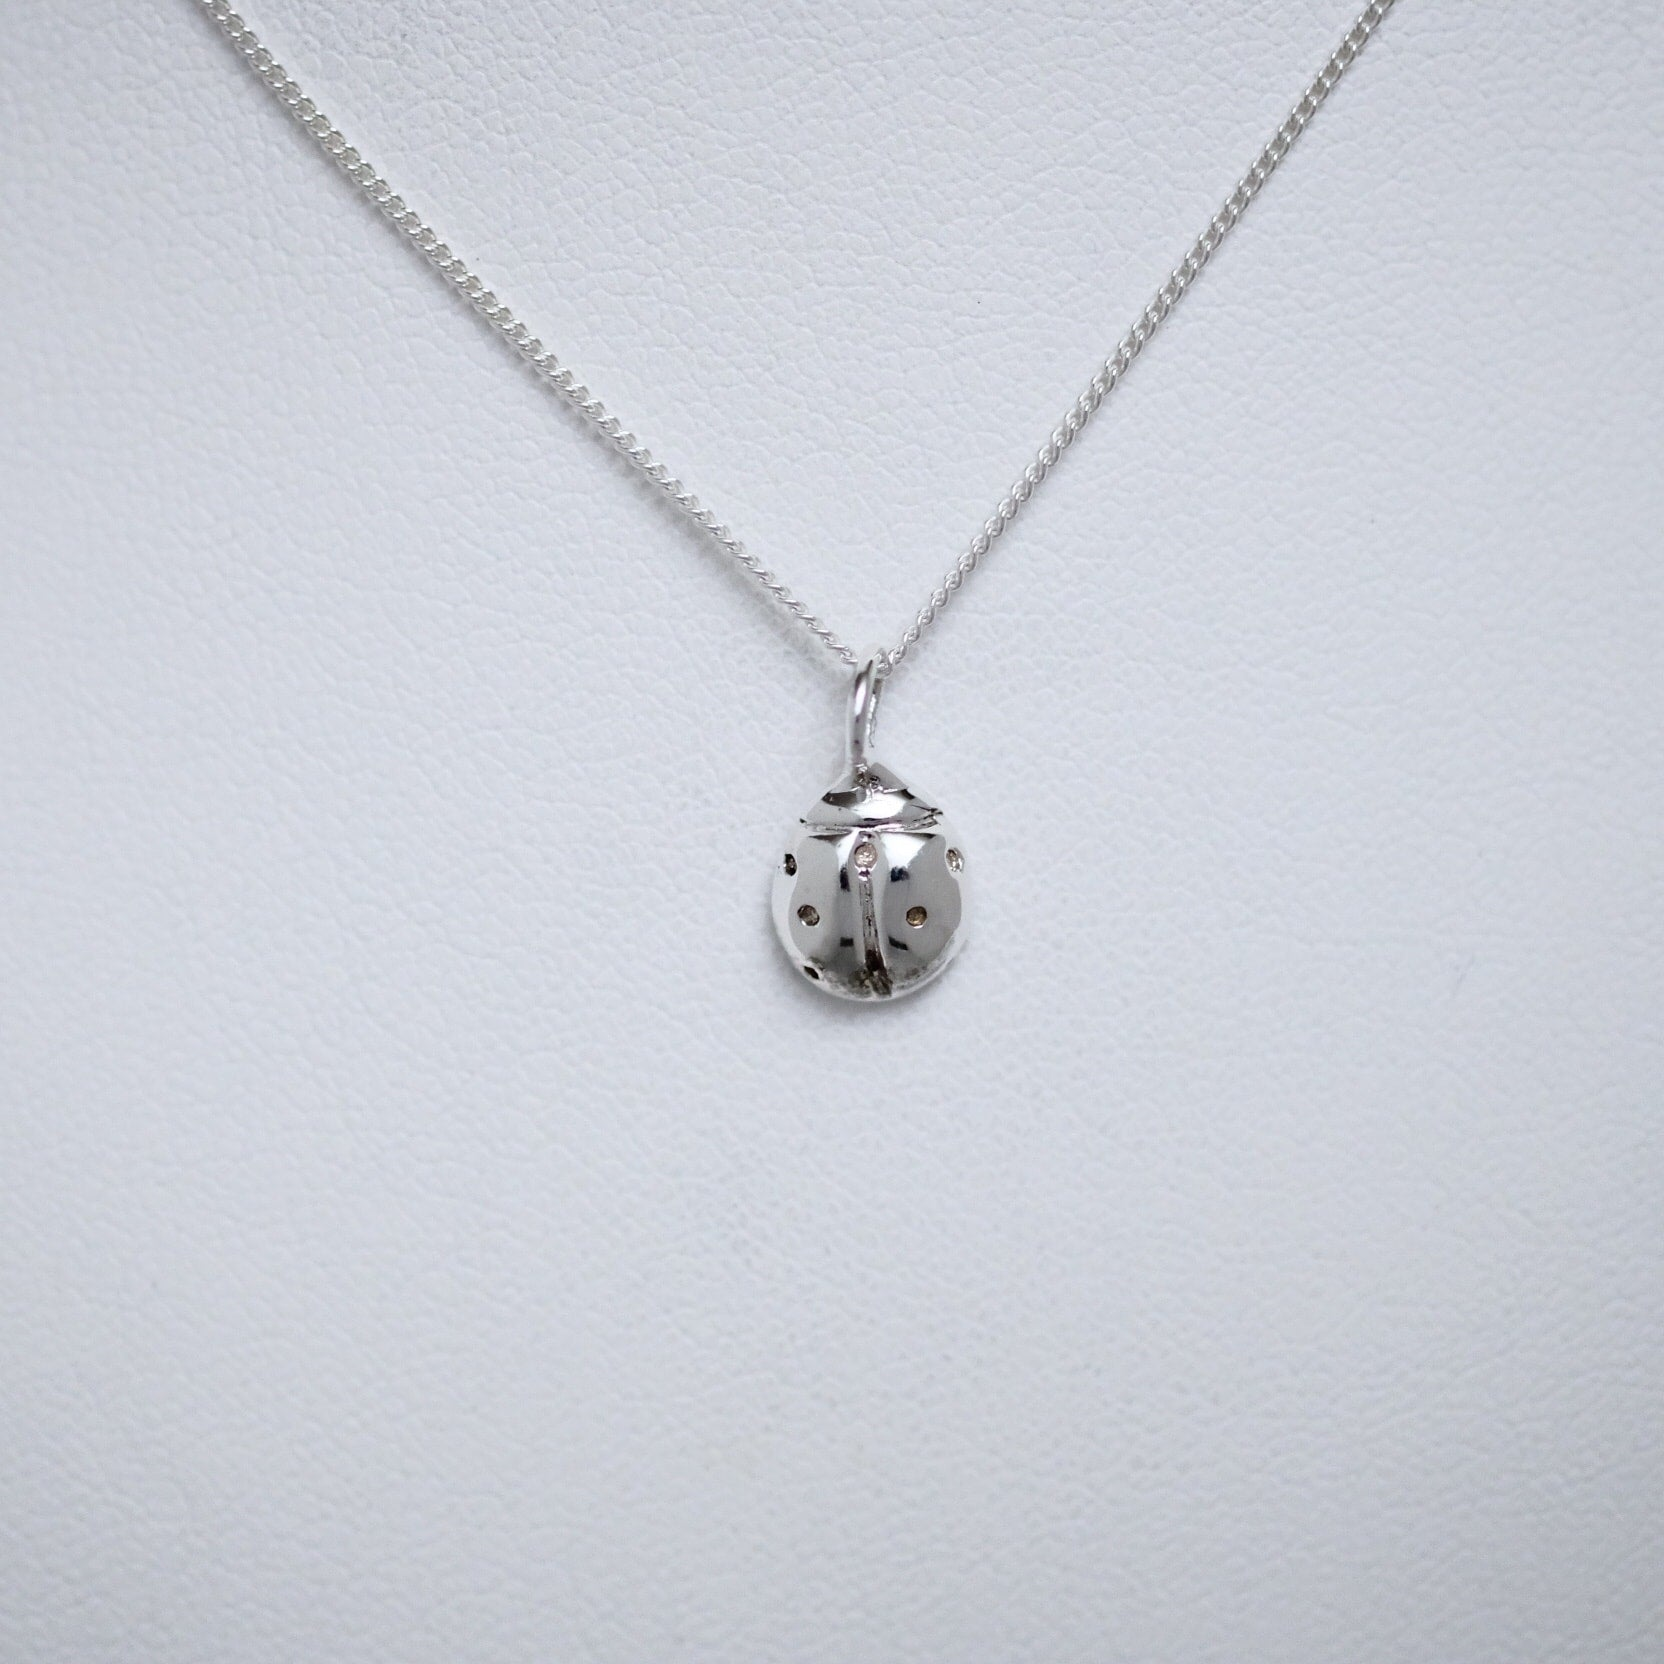 Medium sterling silver ladybug necklace by Joseph Chiang